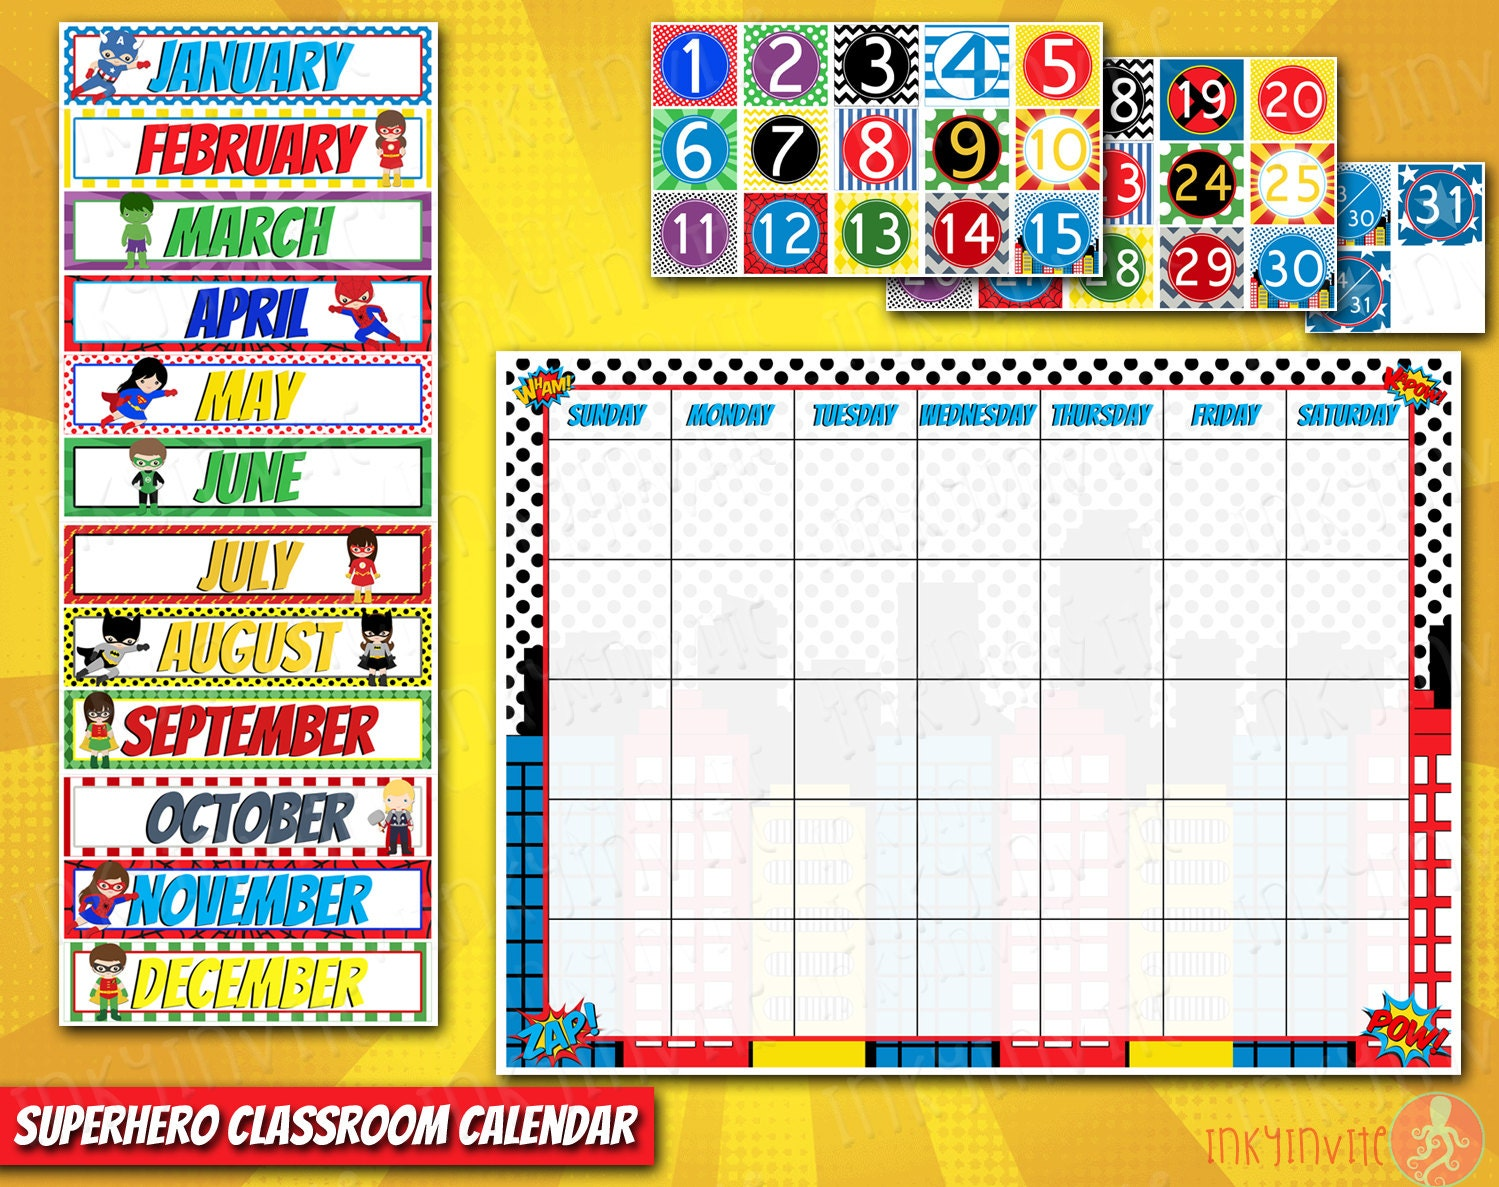 Calendar Decoration Ideas : Superhero classroom calendar pre school